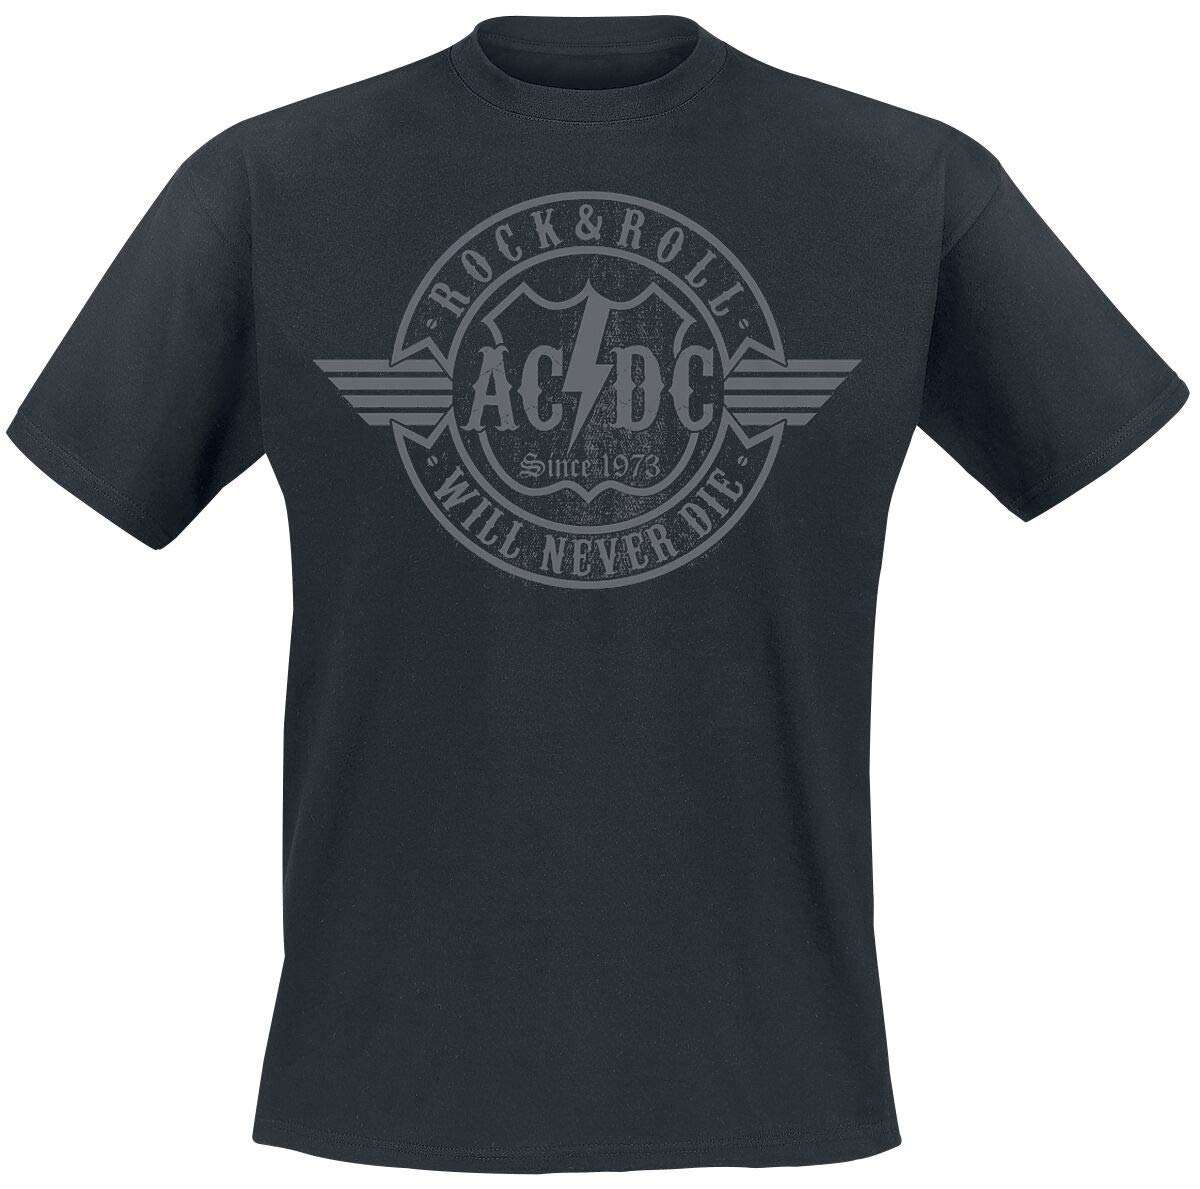 AC/DC Rock & Roll – Will Never Die T-Shirt Black